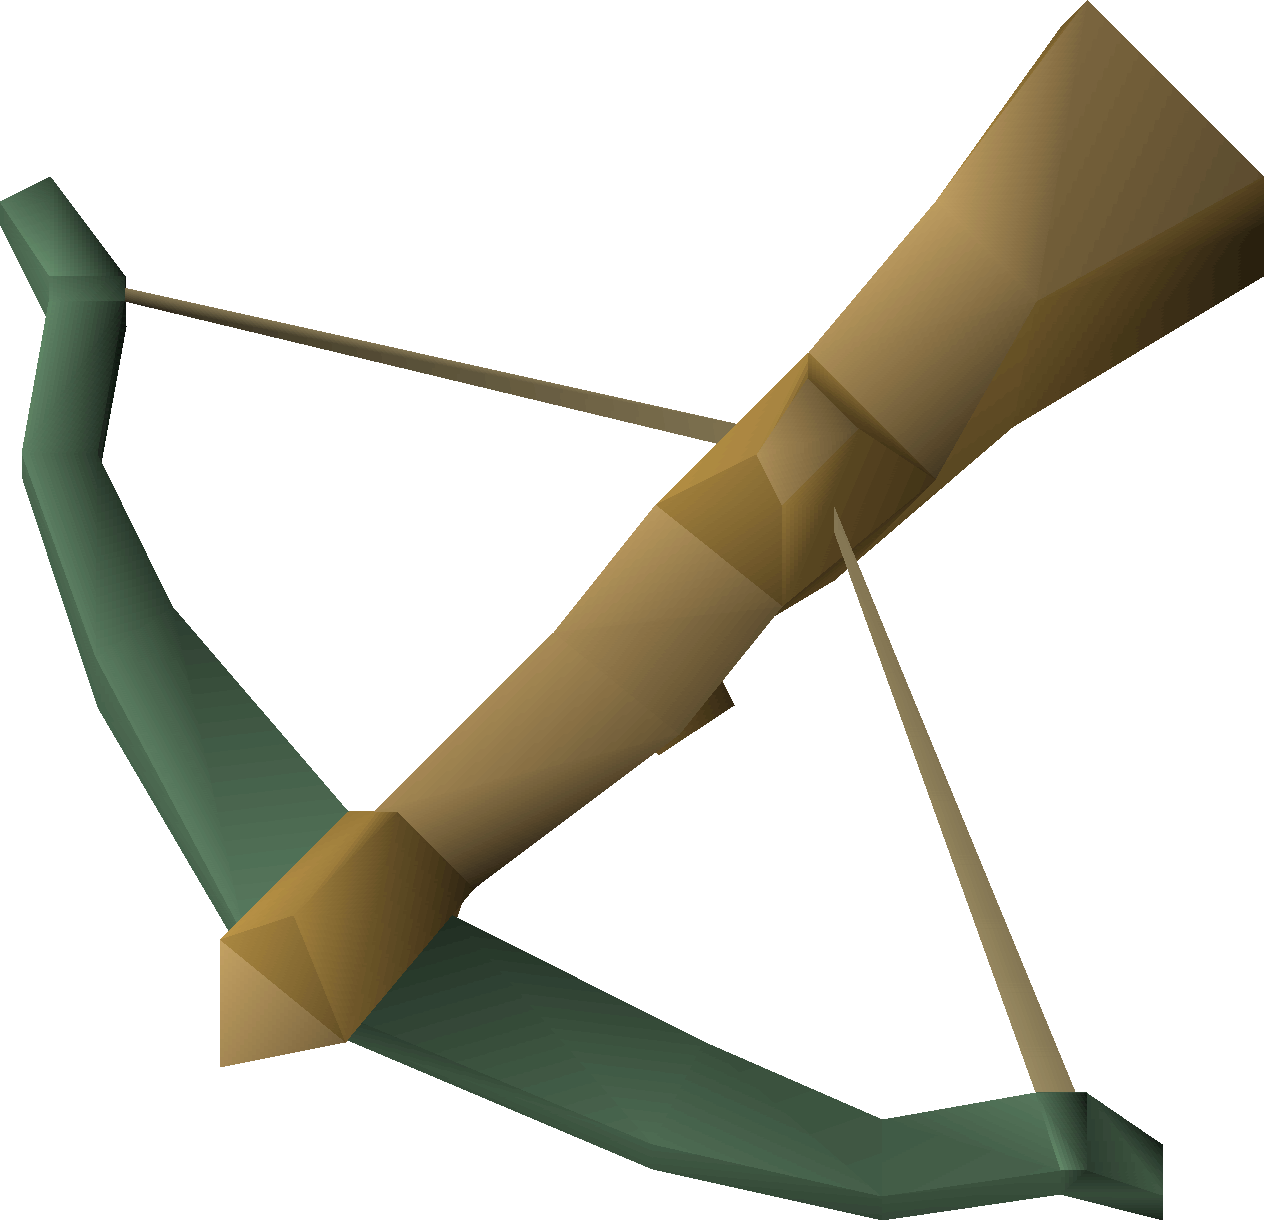 Hunter clipart crossbow. Adamant old school runescape